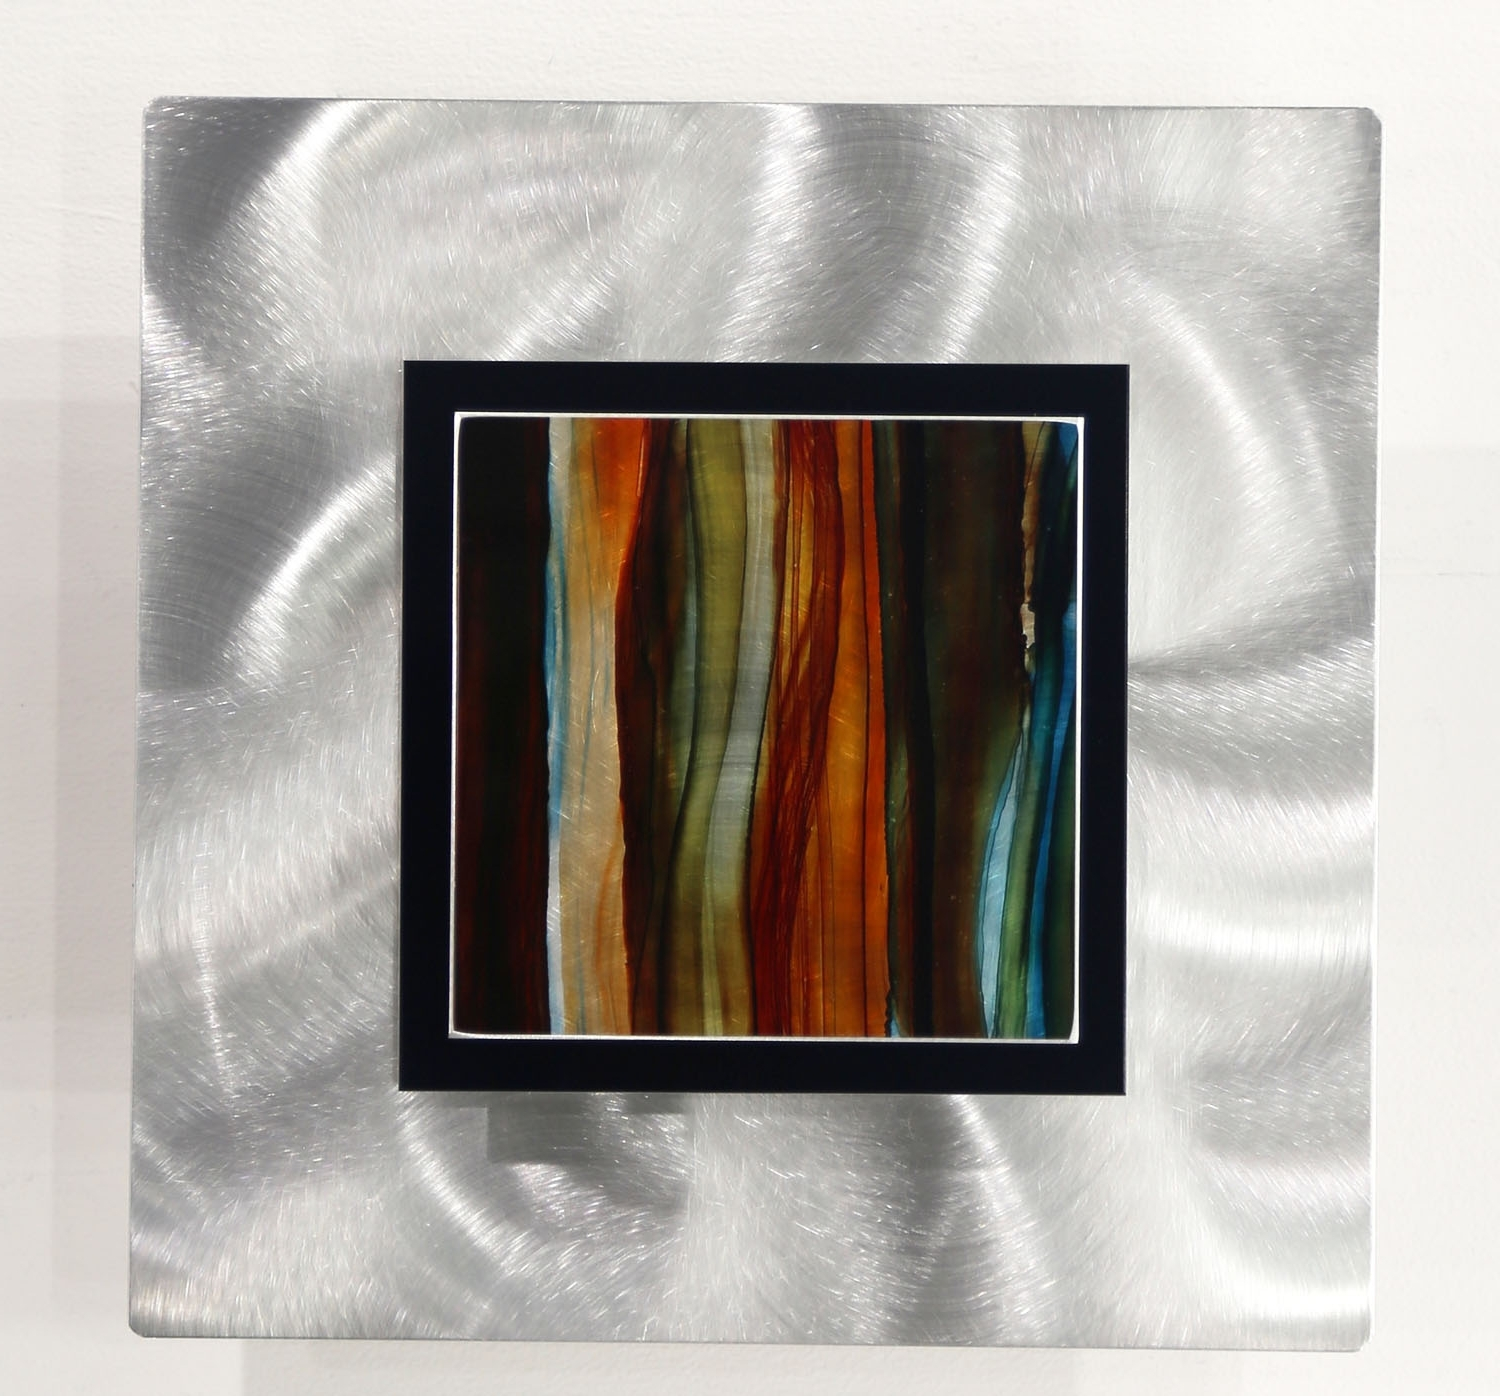 Oj 544jon Allen – Contemporary Metal Wall Art Accent With Regard To Current Earth Tones Wall Accents (View 5 of 15)